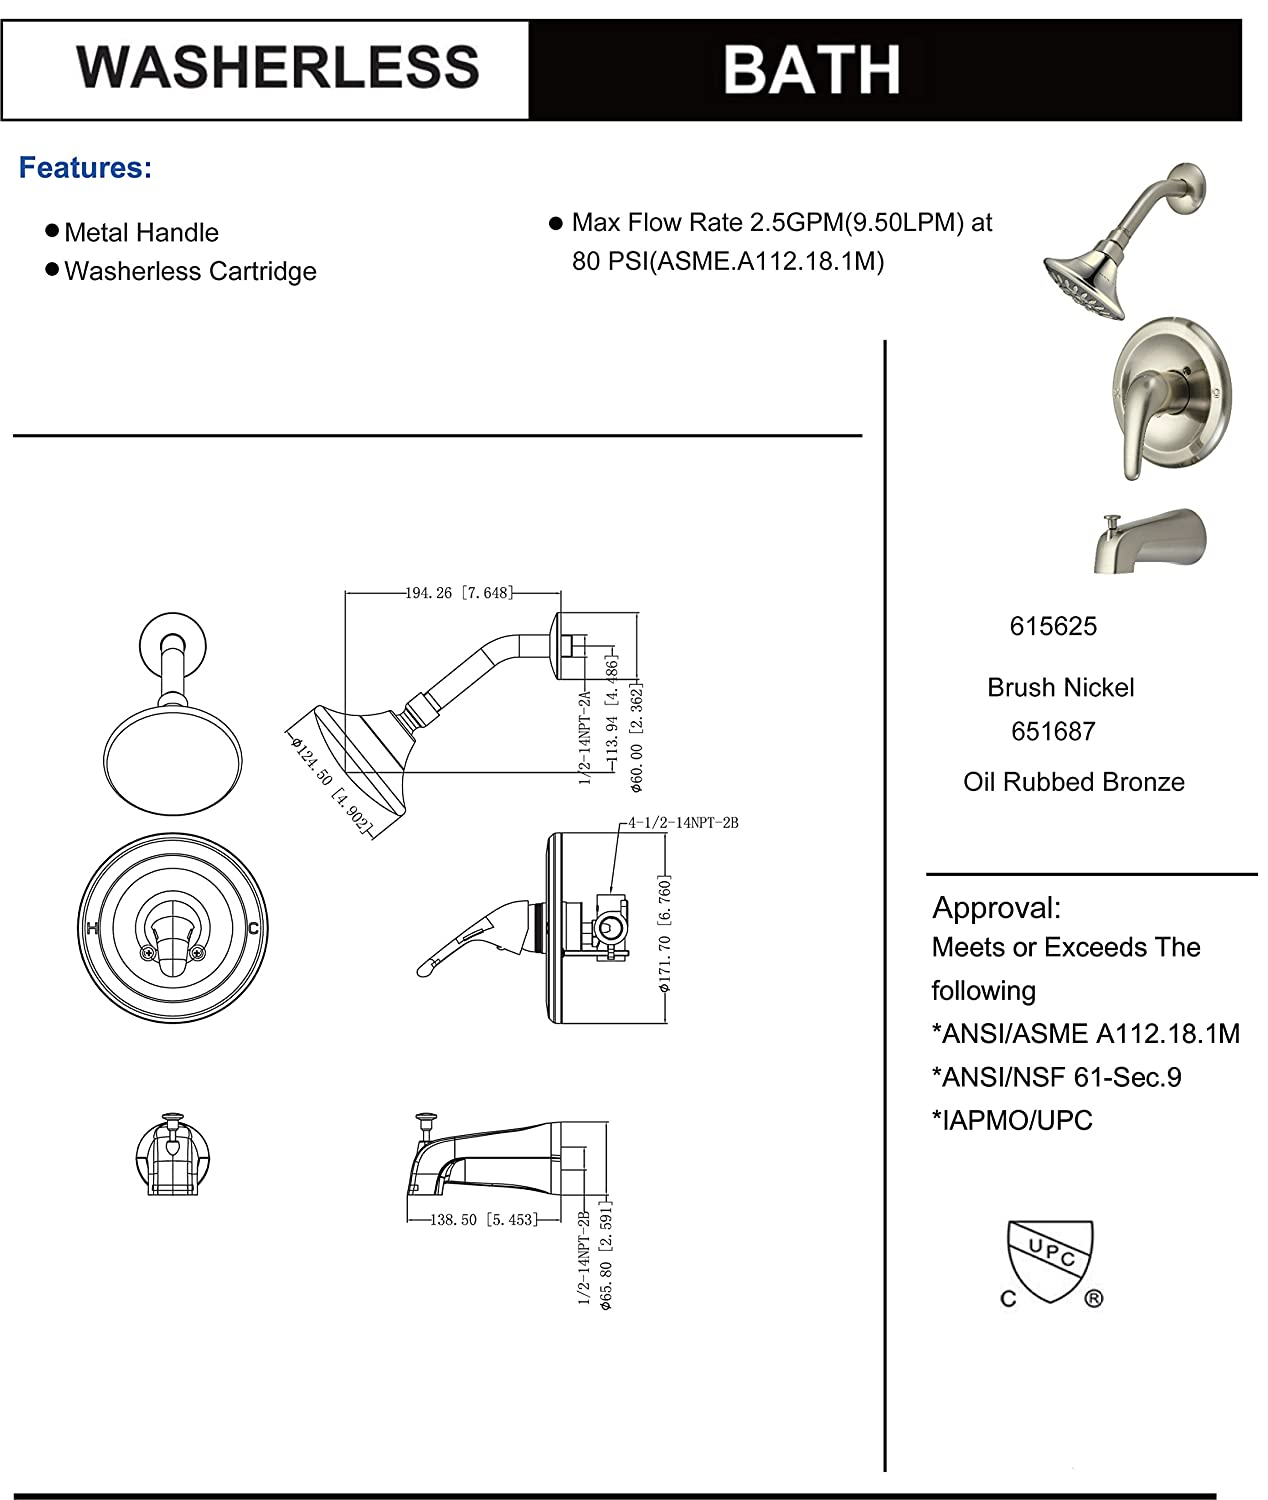 Designers Impressions 651687 Oil Rubbed Bronze Tub Shower Combo Peerless Industrial Mixer Wiring Diagram Faucet Single Handle Design Multi Setting Head